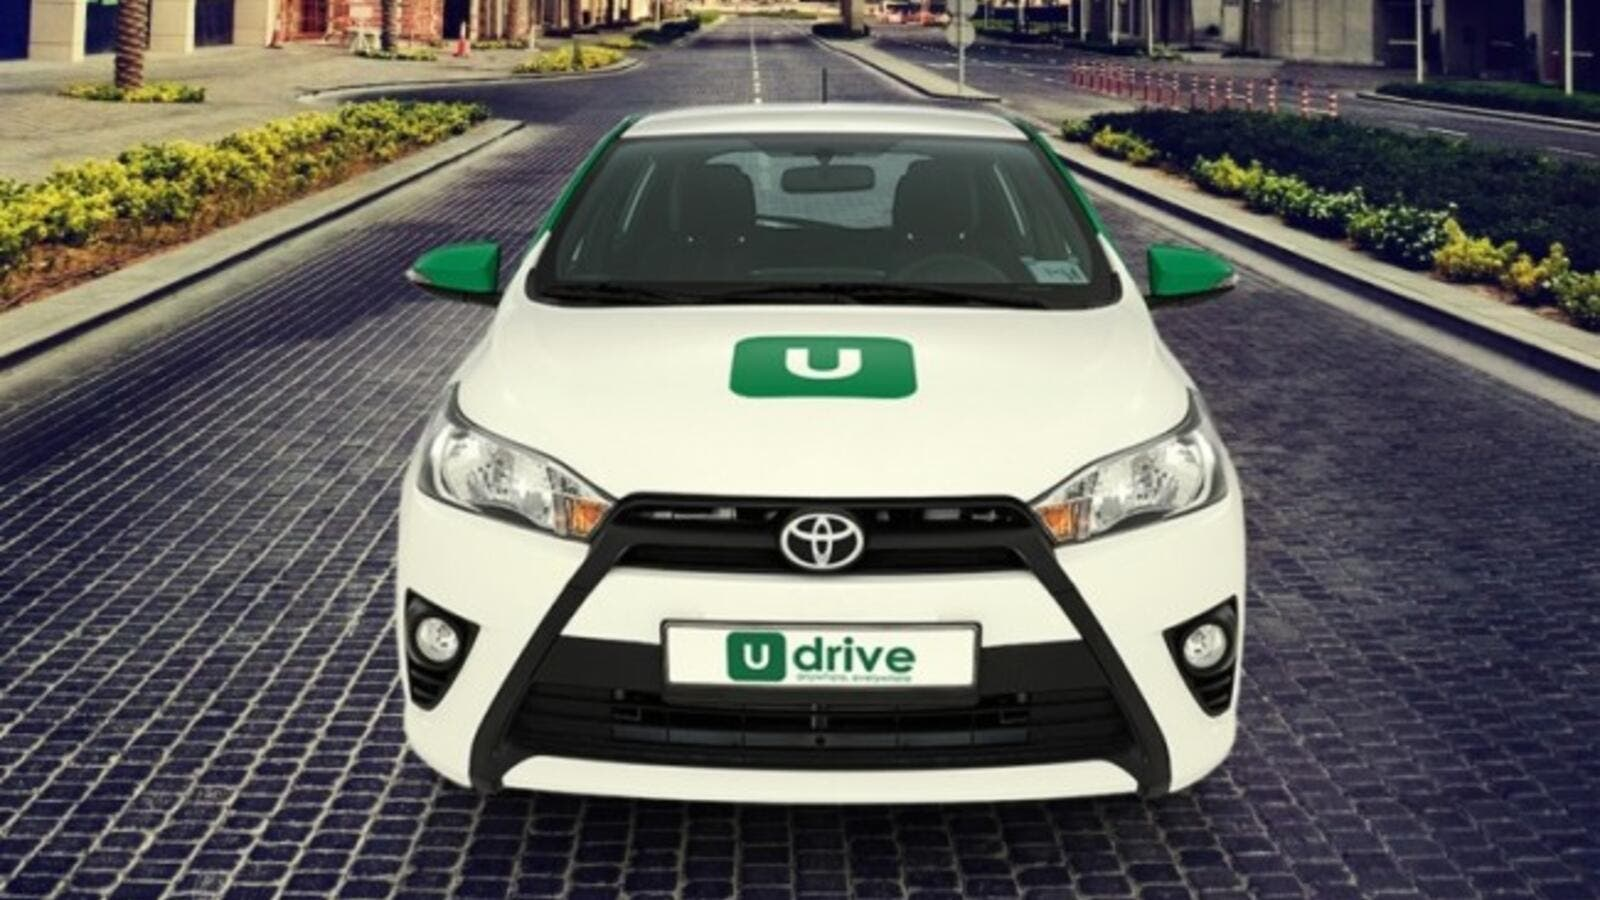 UDrive will continue with a reduced-rate for daily rentals. (Twitter)